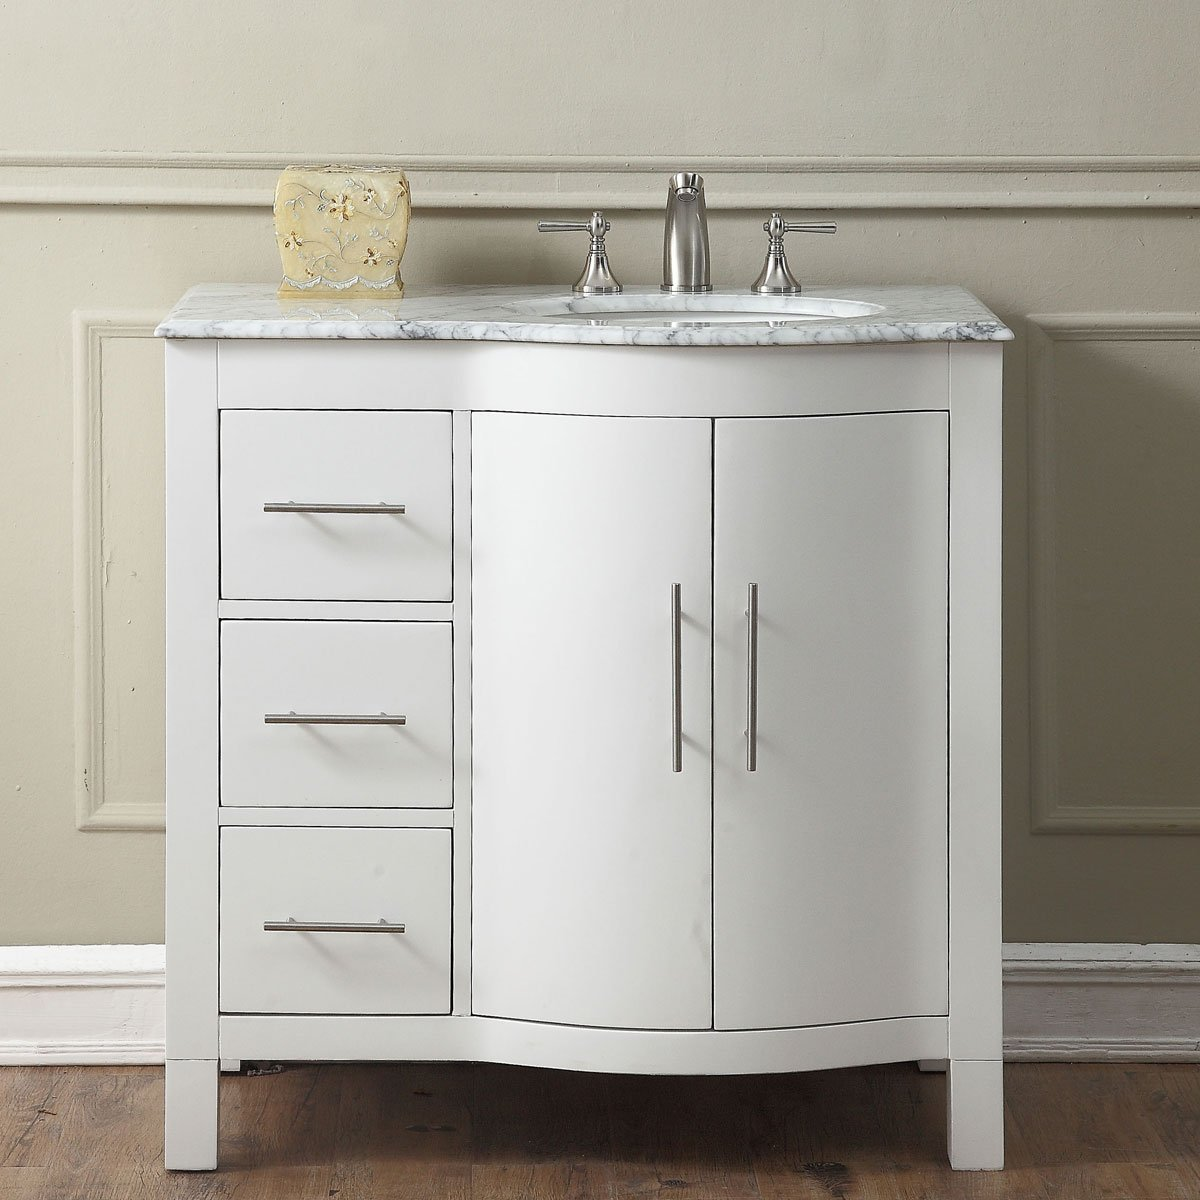 36 inch single sink contemporary bathroom vanity cabinet in white finish carrara white marble White bathroom vanity cabinets